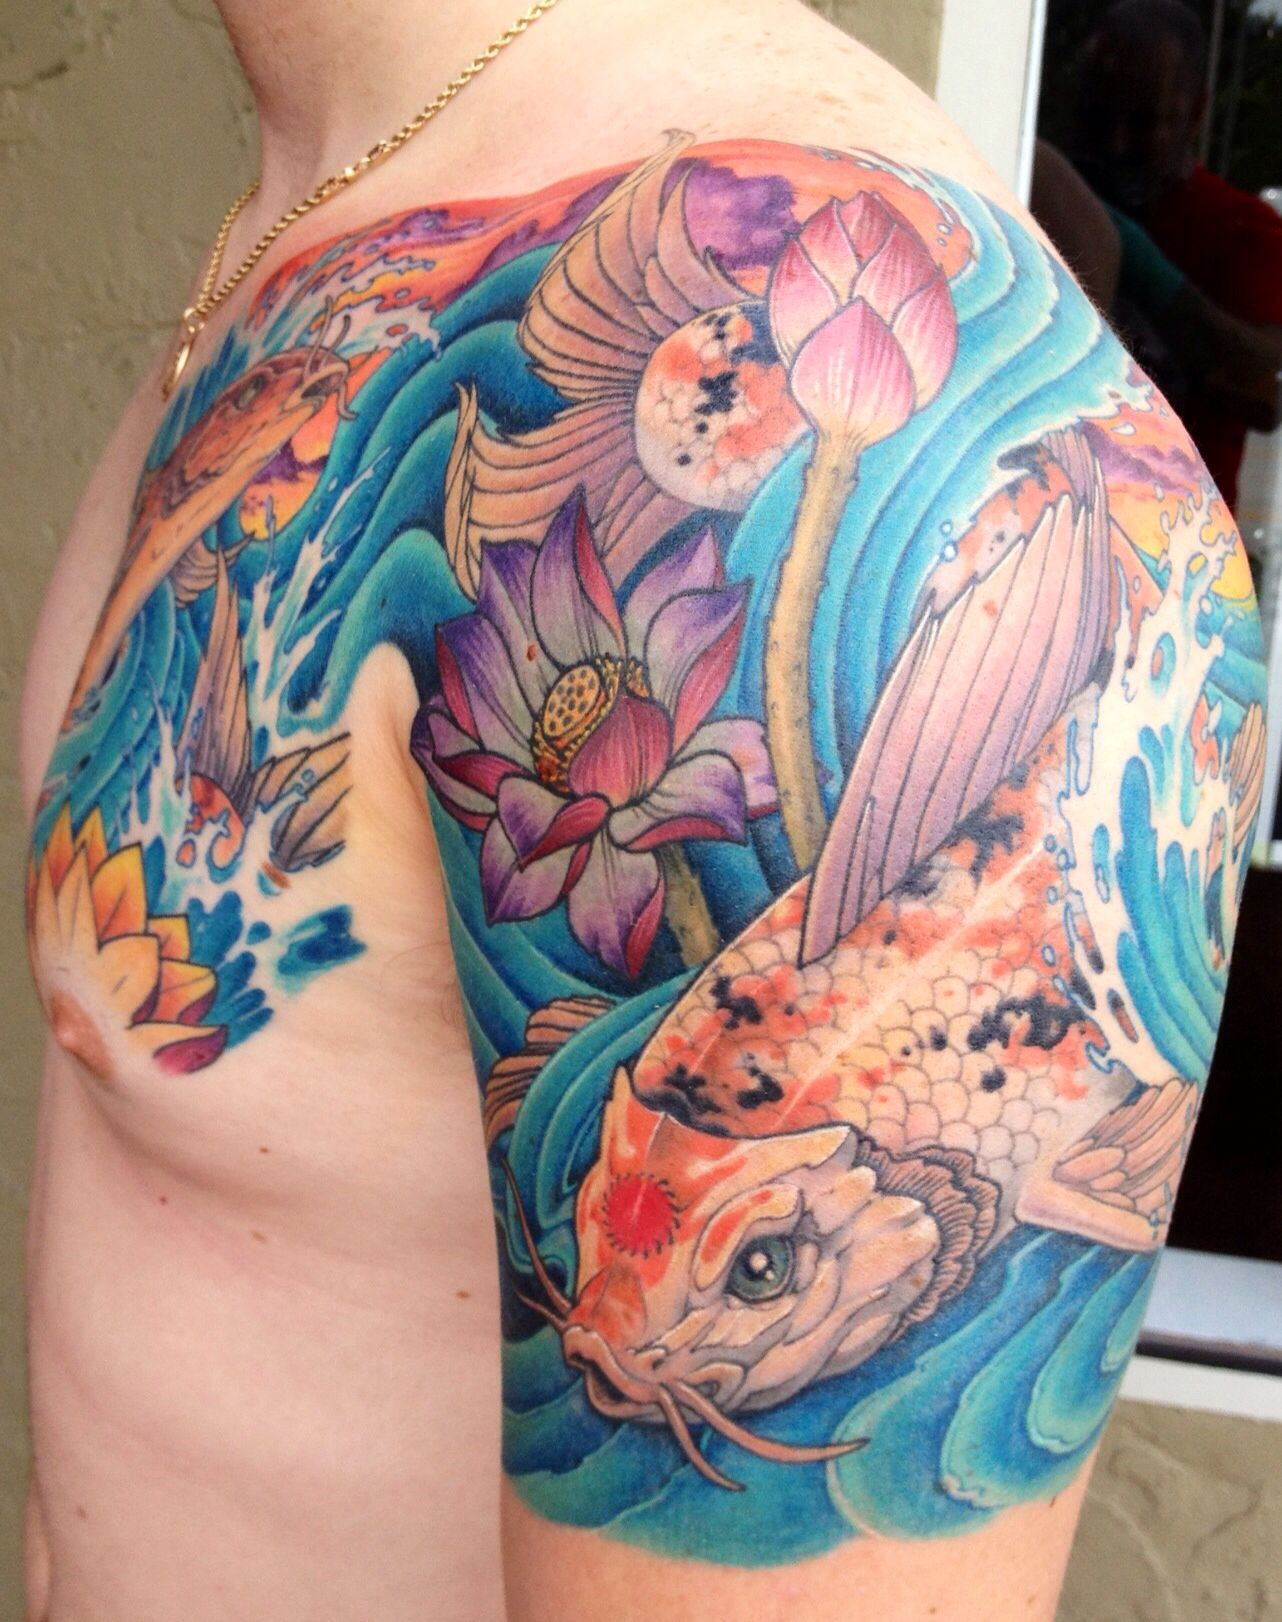 65 Japanese Koi Fish Tattoo Designs Meanings: Men Koi Fish Tattoo Design..lotus Flower And Water.